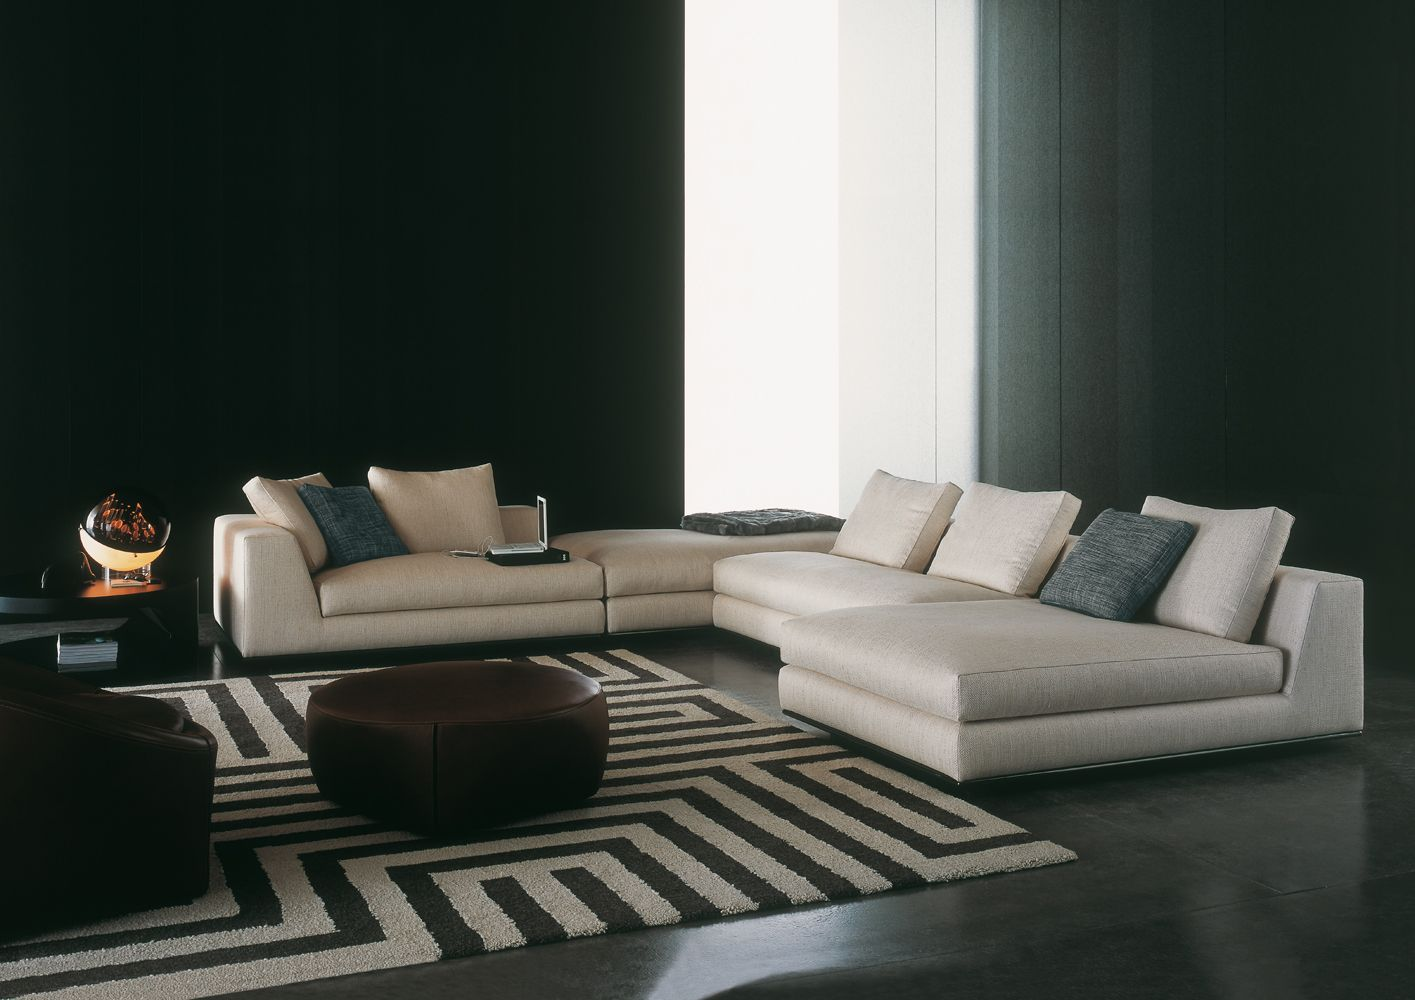 Hamilton is a seating system with a simple design, composed of fixed sofas  which allow